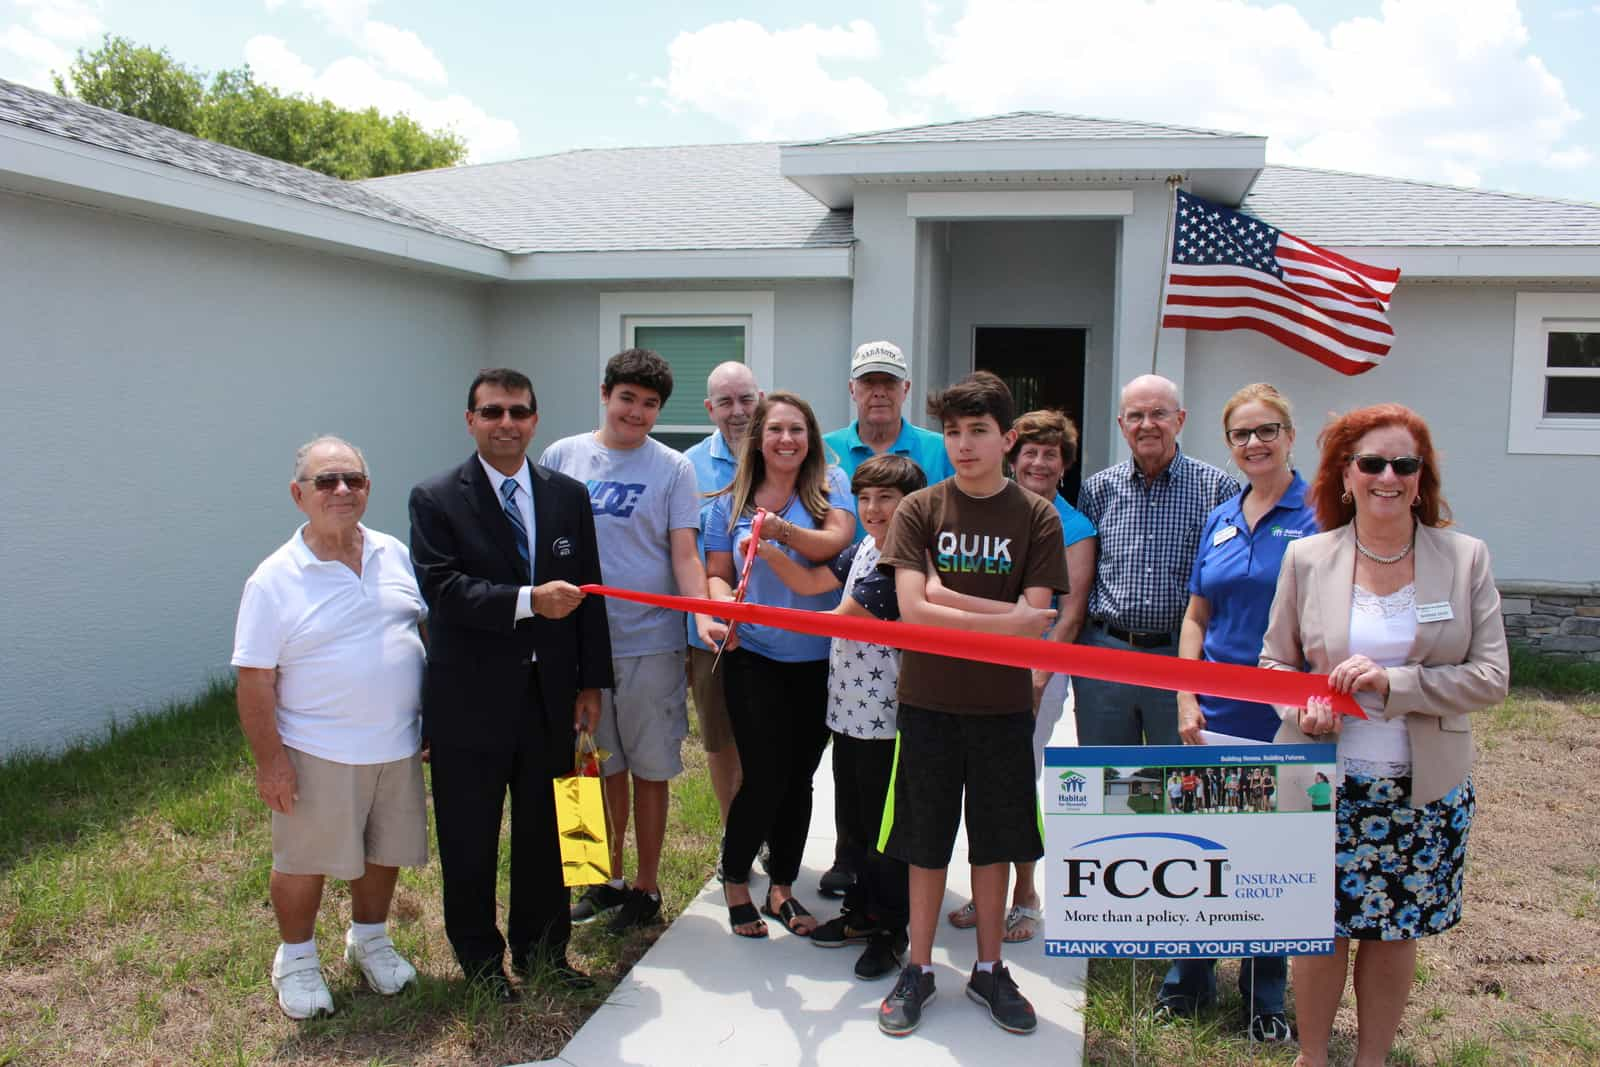 Members from FCCI with a Habitat Sarasota homeowner at her home dedication.